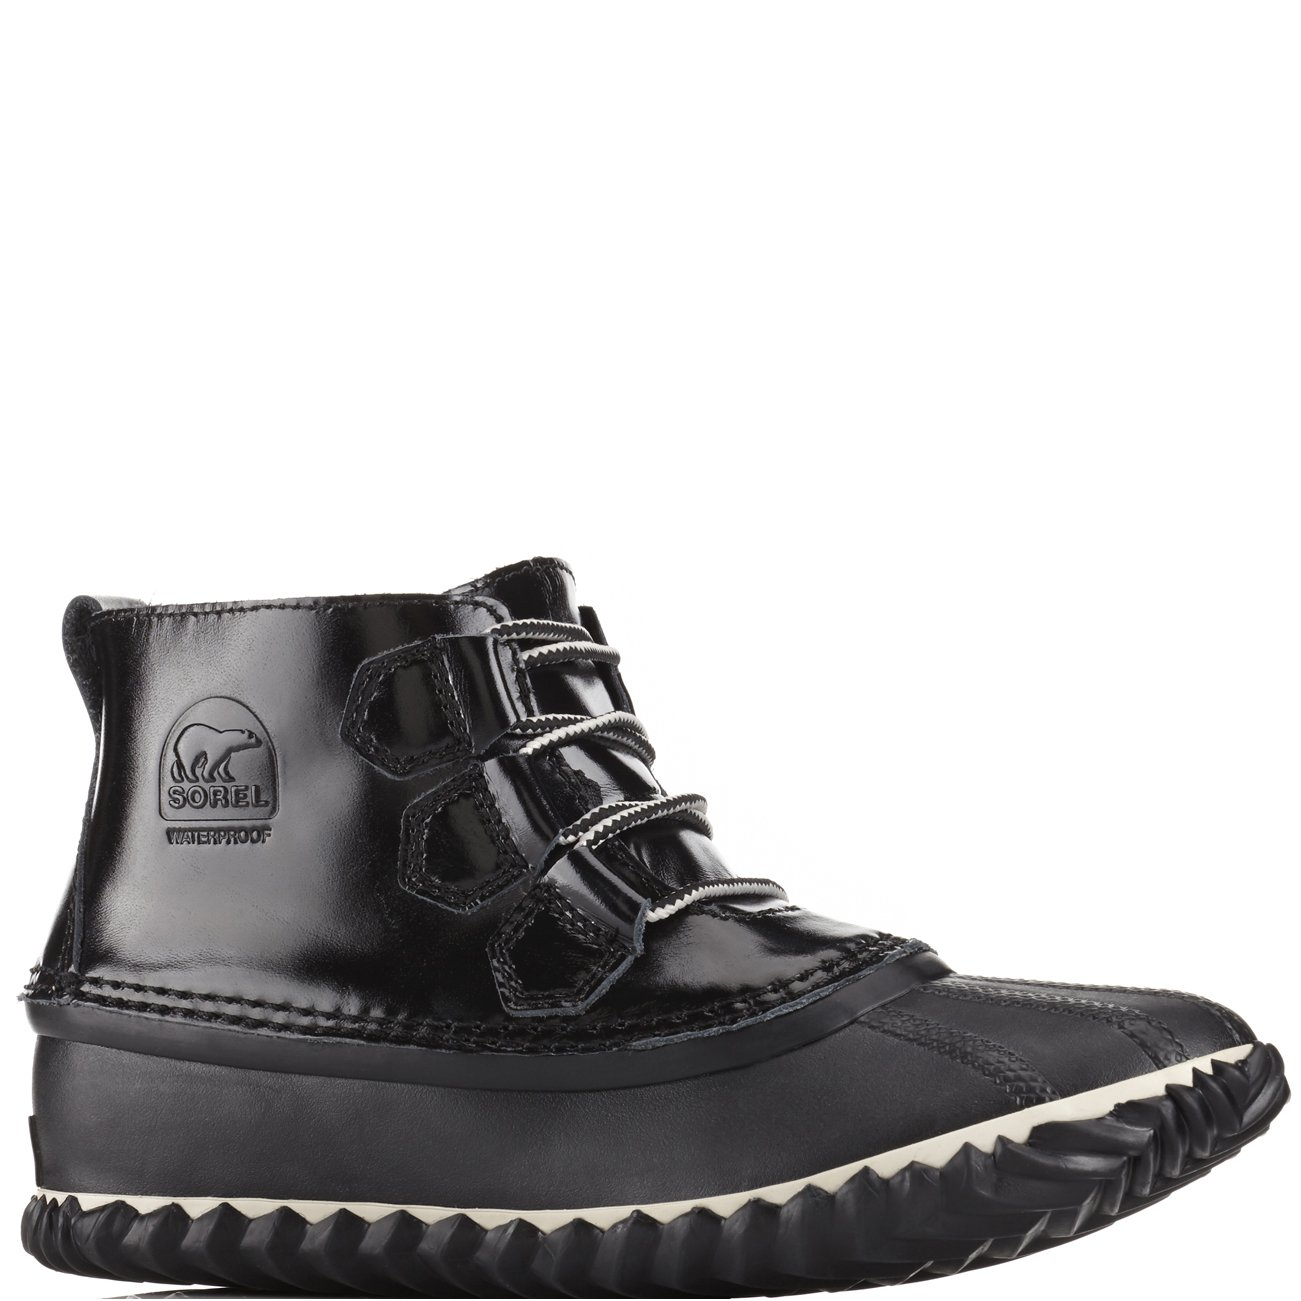 SOREL Women's Out N About Black/Noir Ankle-High Leather Rain Boot - 8M